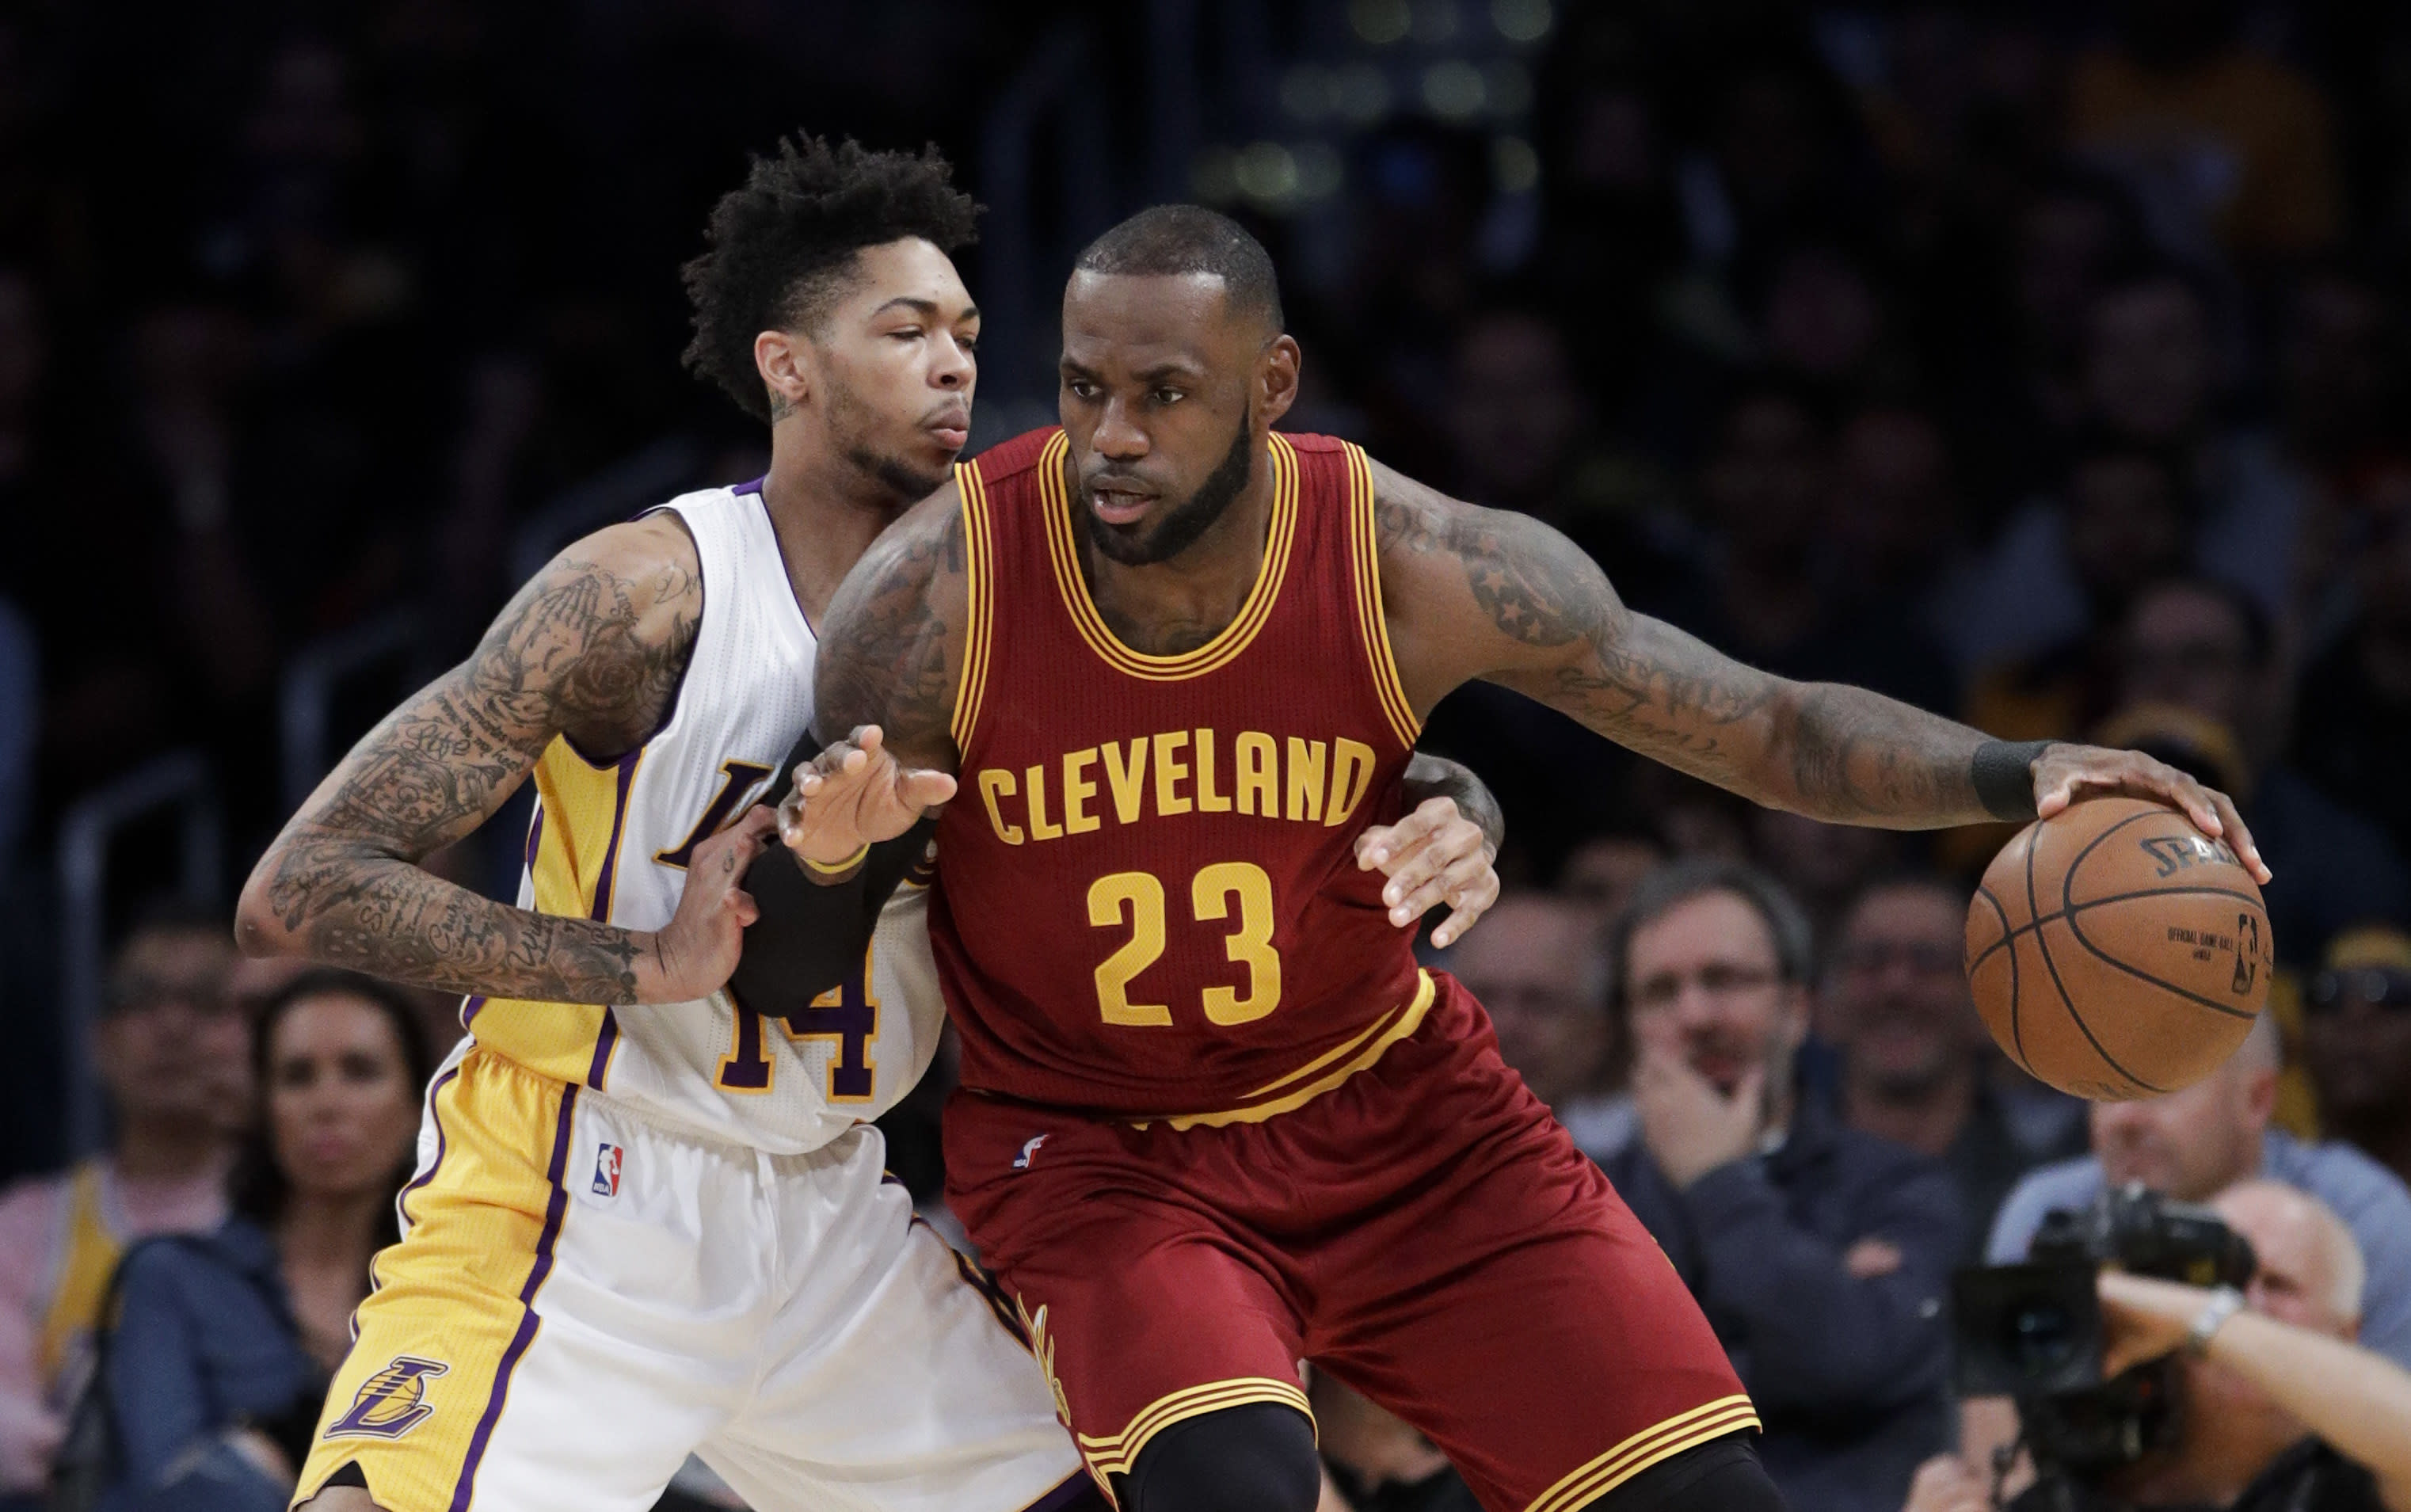 Report: LeBron James joining Lakers in 2018 'a long shot'